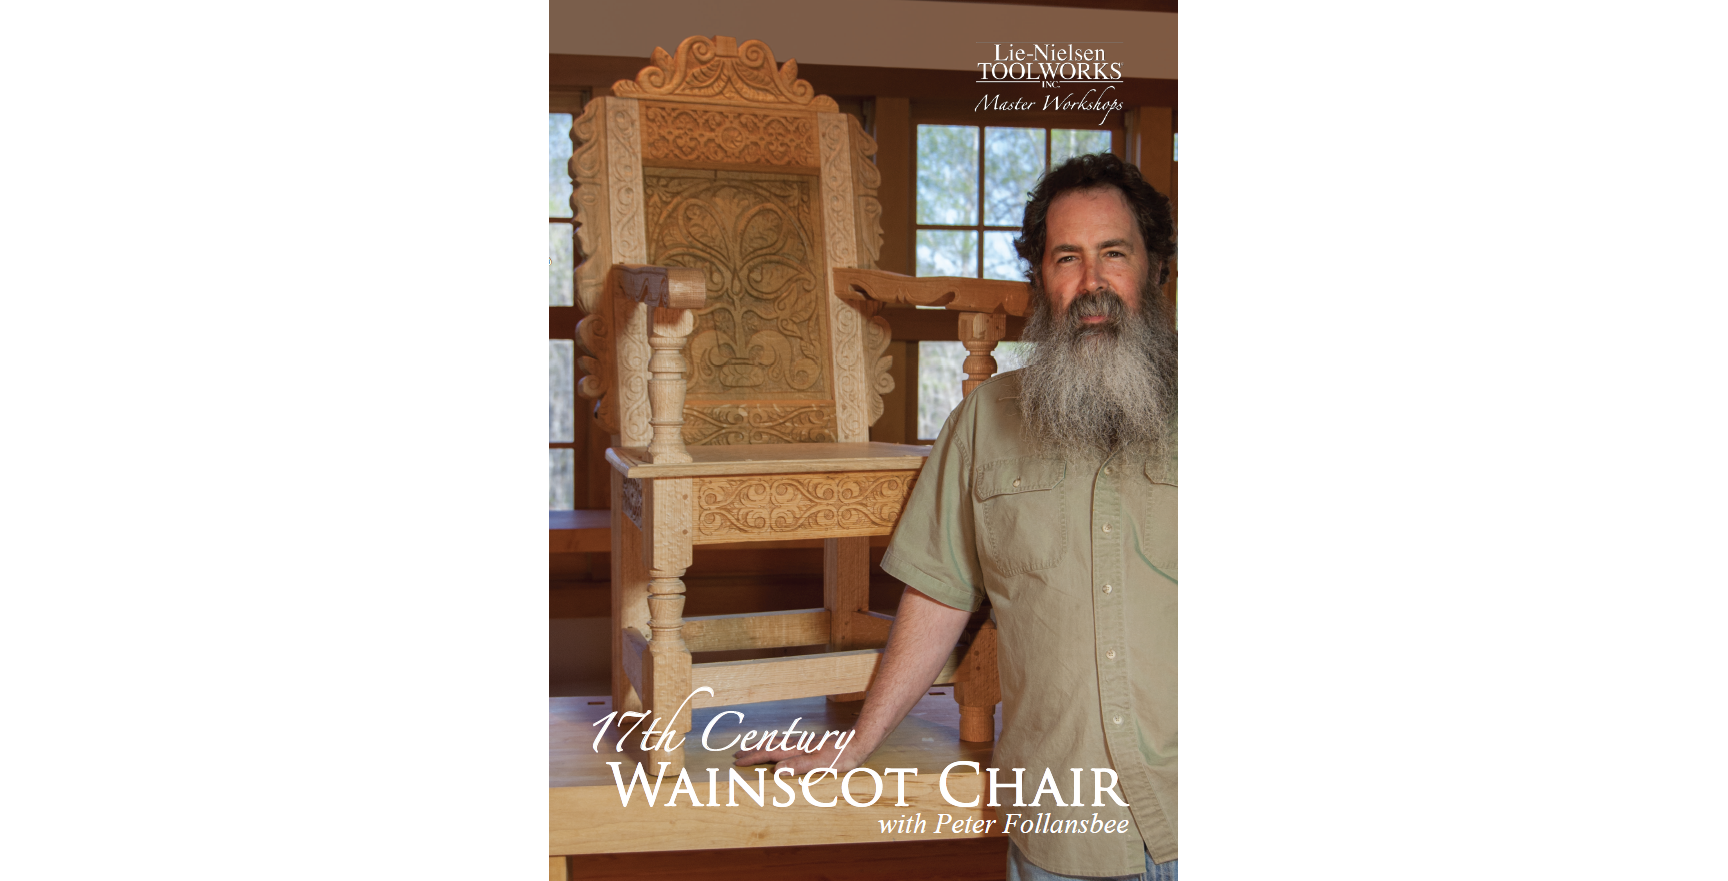 17th Century Wainscot Chair With Peter Follansbee Lie Nielsen Toolworks